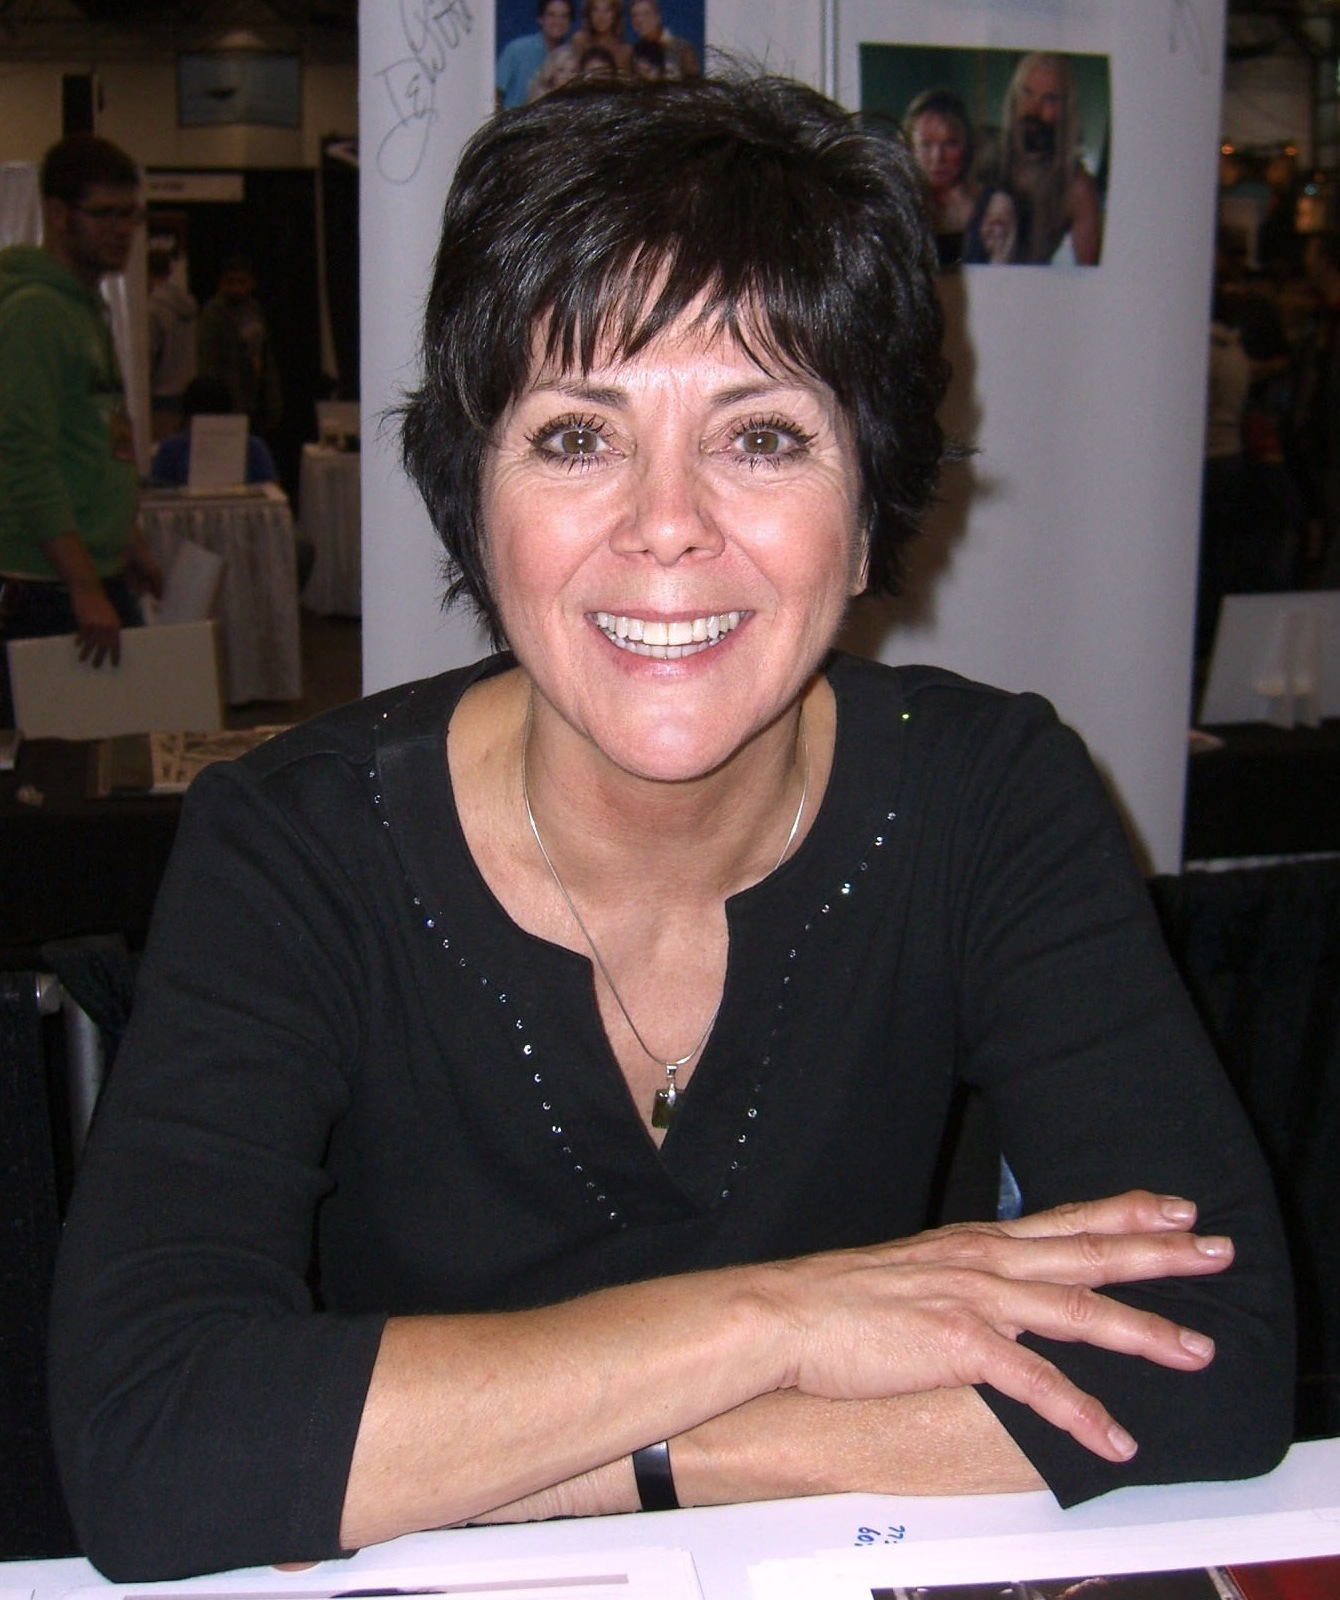 The 69-year old daughter of father Paul DeWitt and mother Norma DeWitt Joyce DeWitt in 2018 photo. Joyce DeWitt earned a  million dollar salary - leaving the net worth at 2 million in 2018